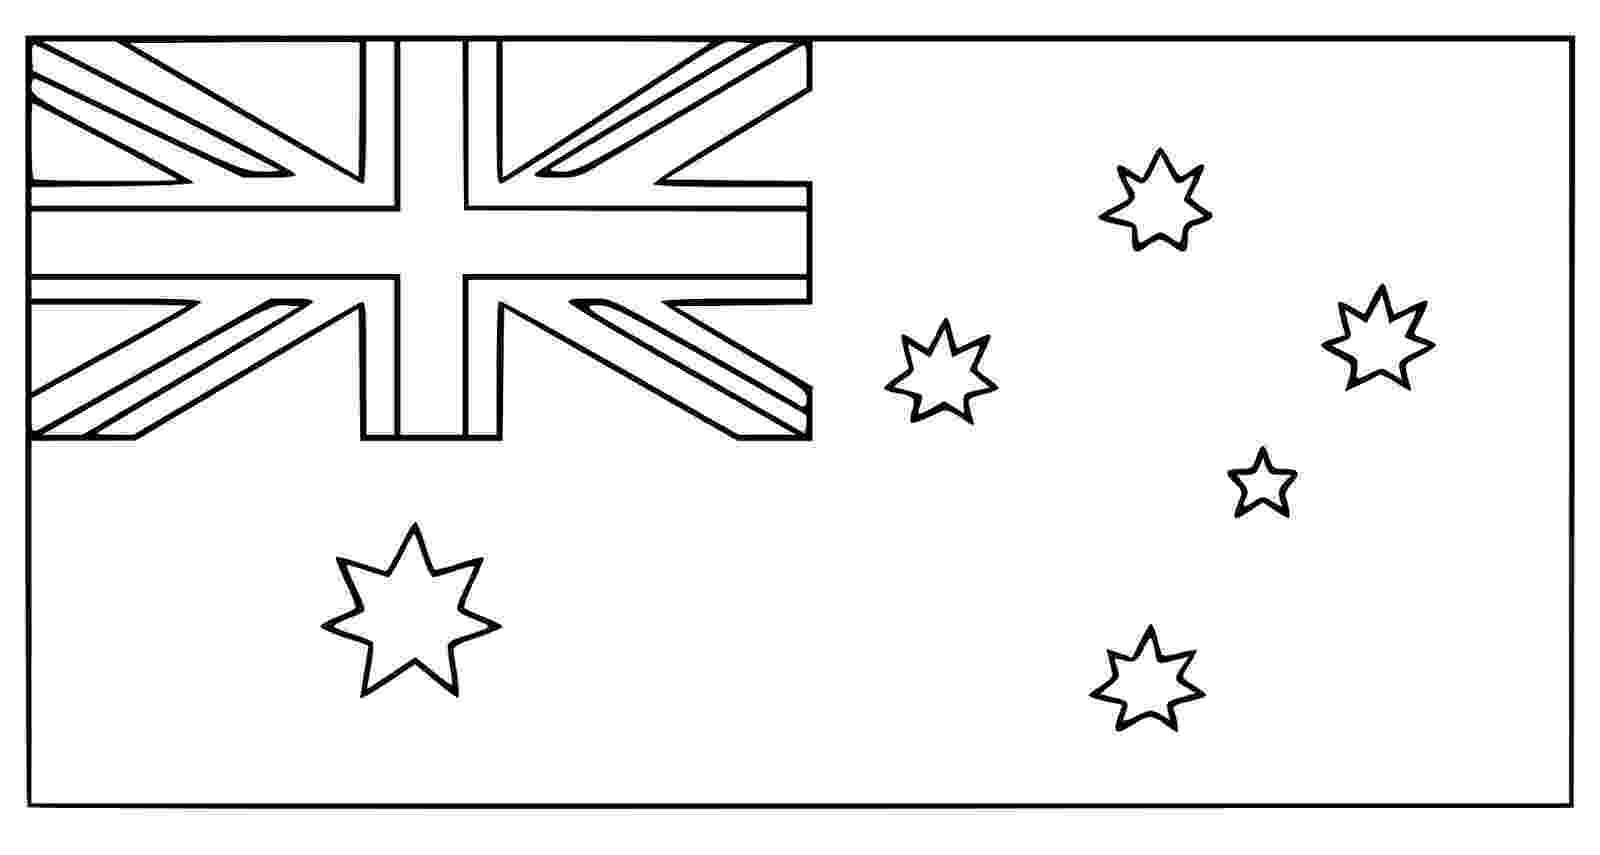 new zealand flag coloring page the geography blog new zealand flag colouring page flag coloring new page zealand